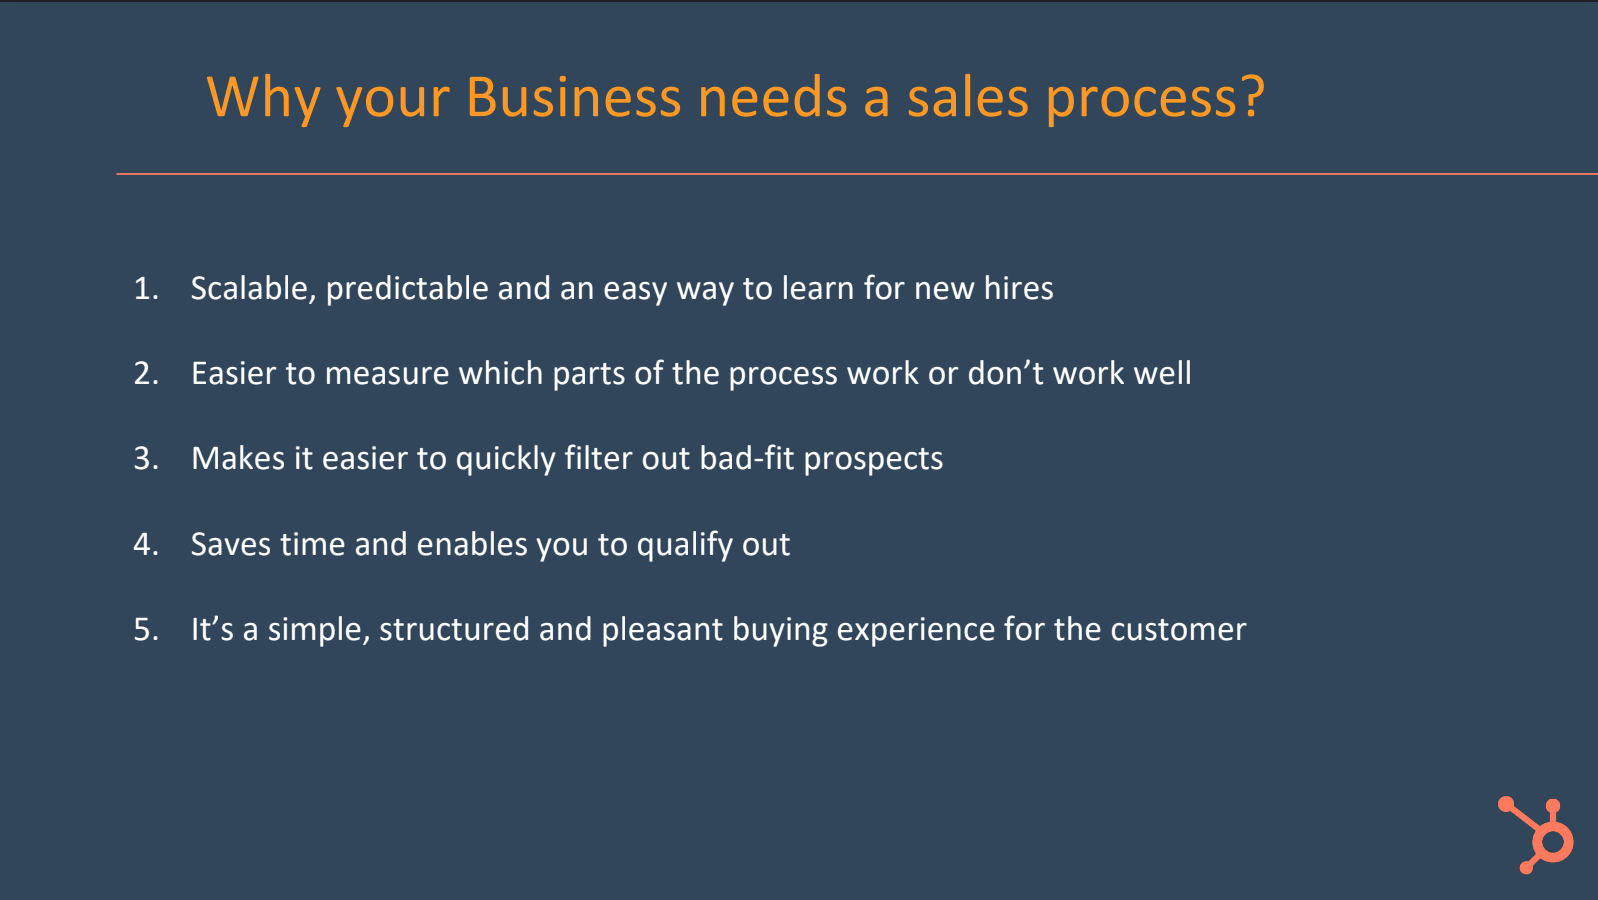 Why your business needs a sales process